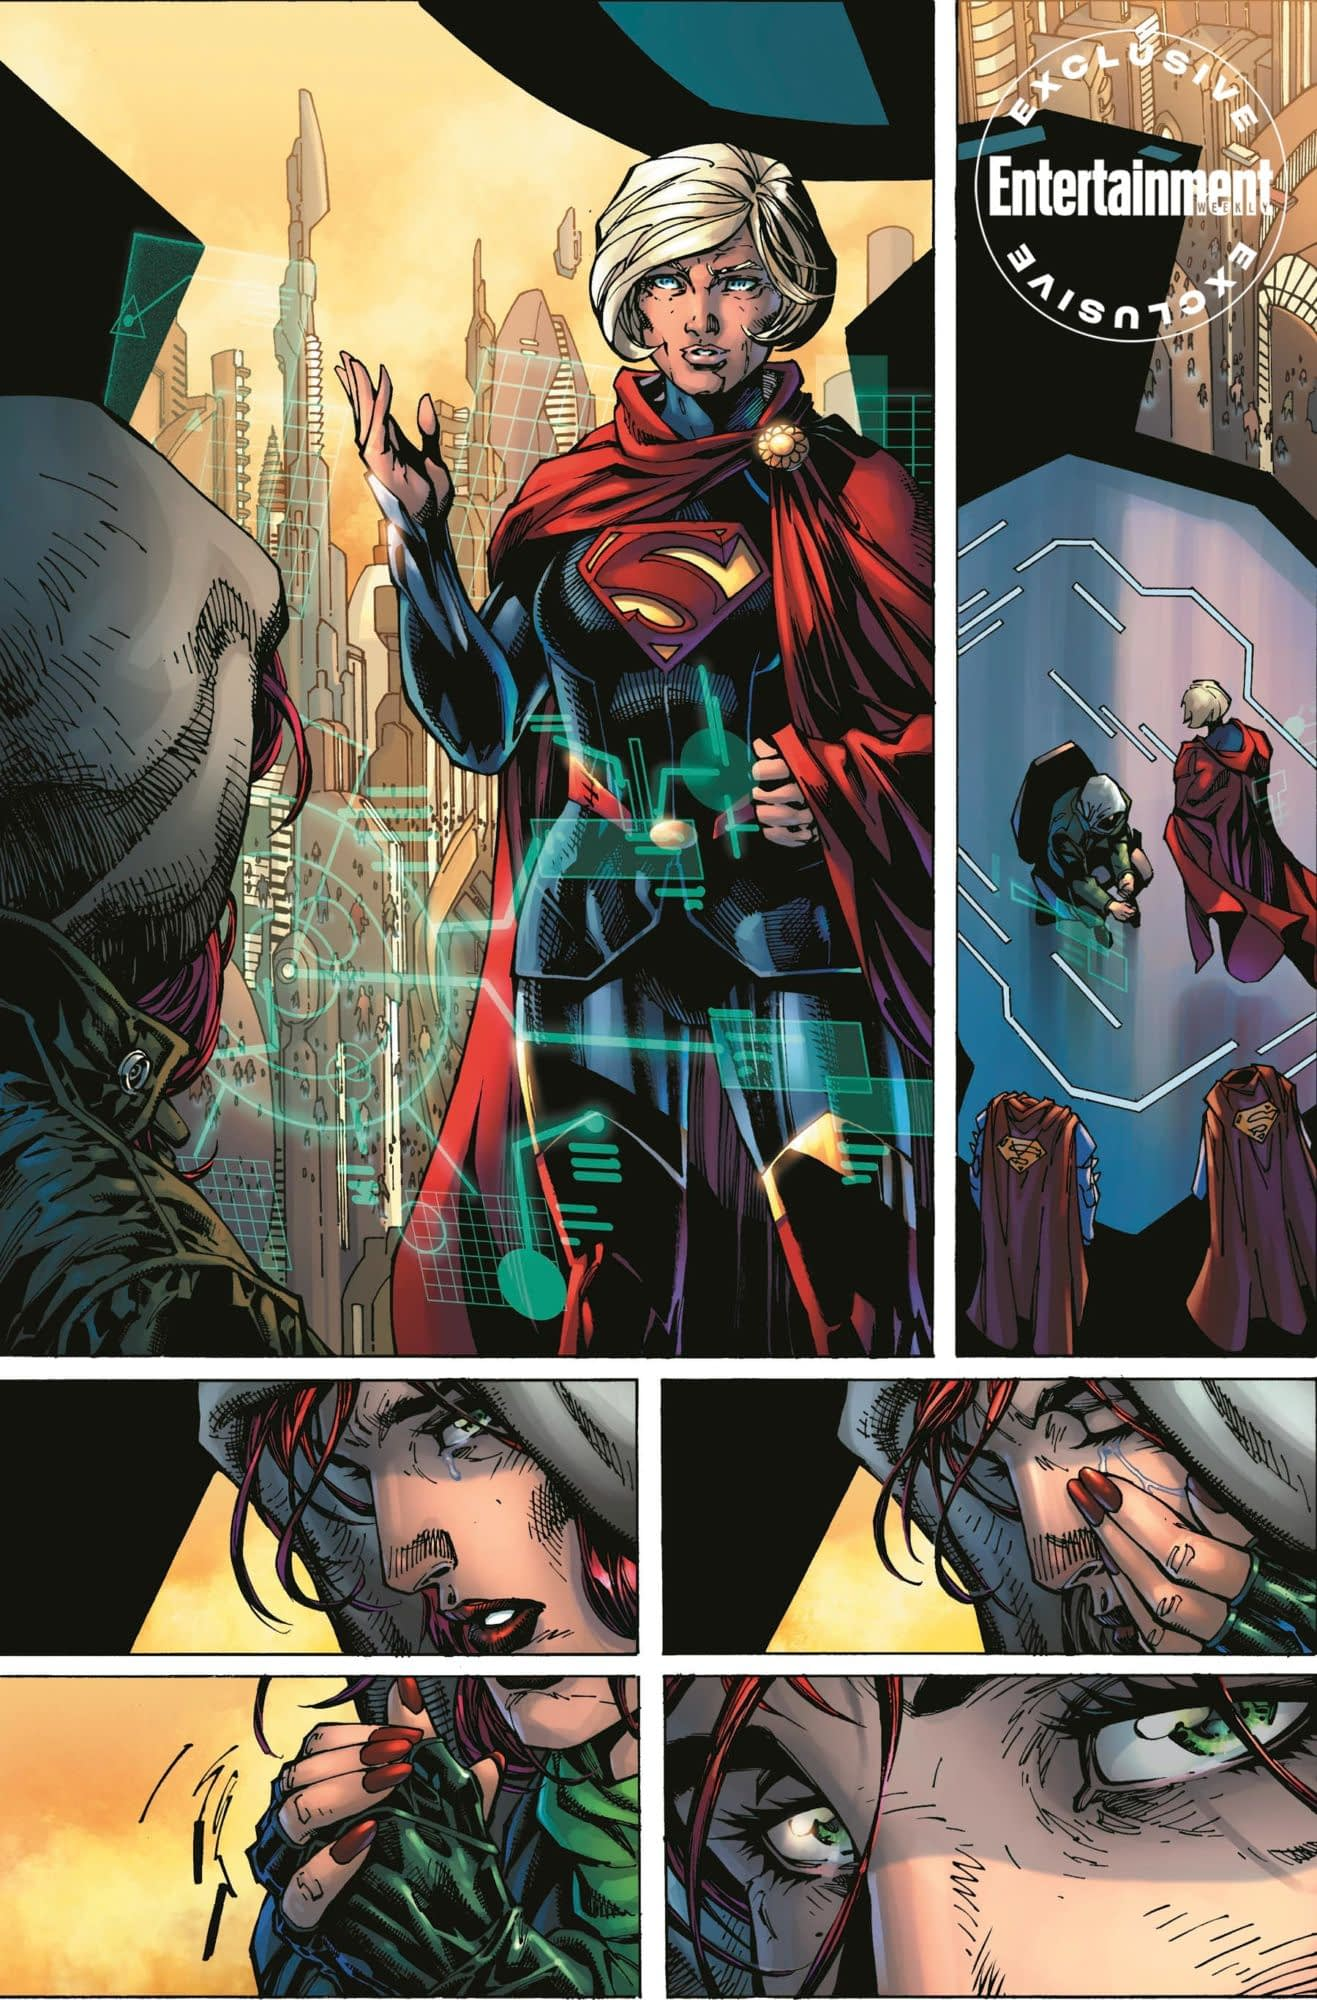 First Look at Jim Lee's Art from Legion of Superheroes, DC's Answer to Burning Amazon Rainforests